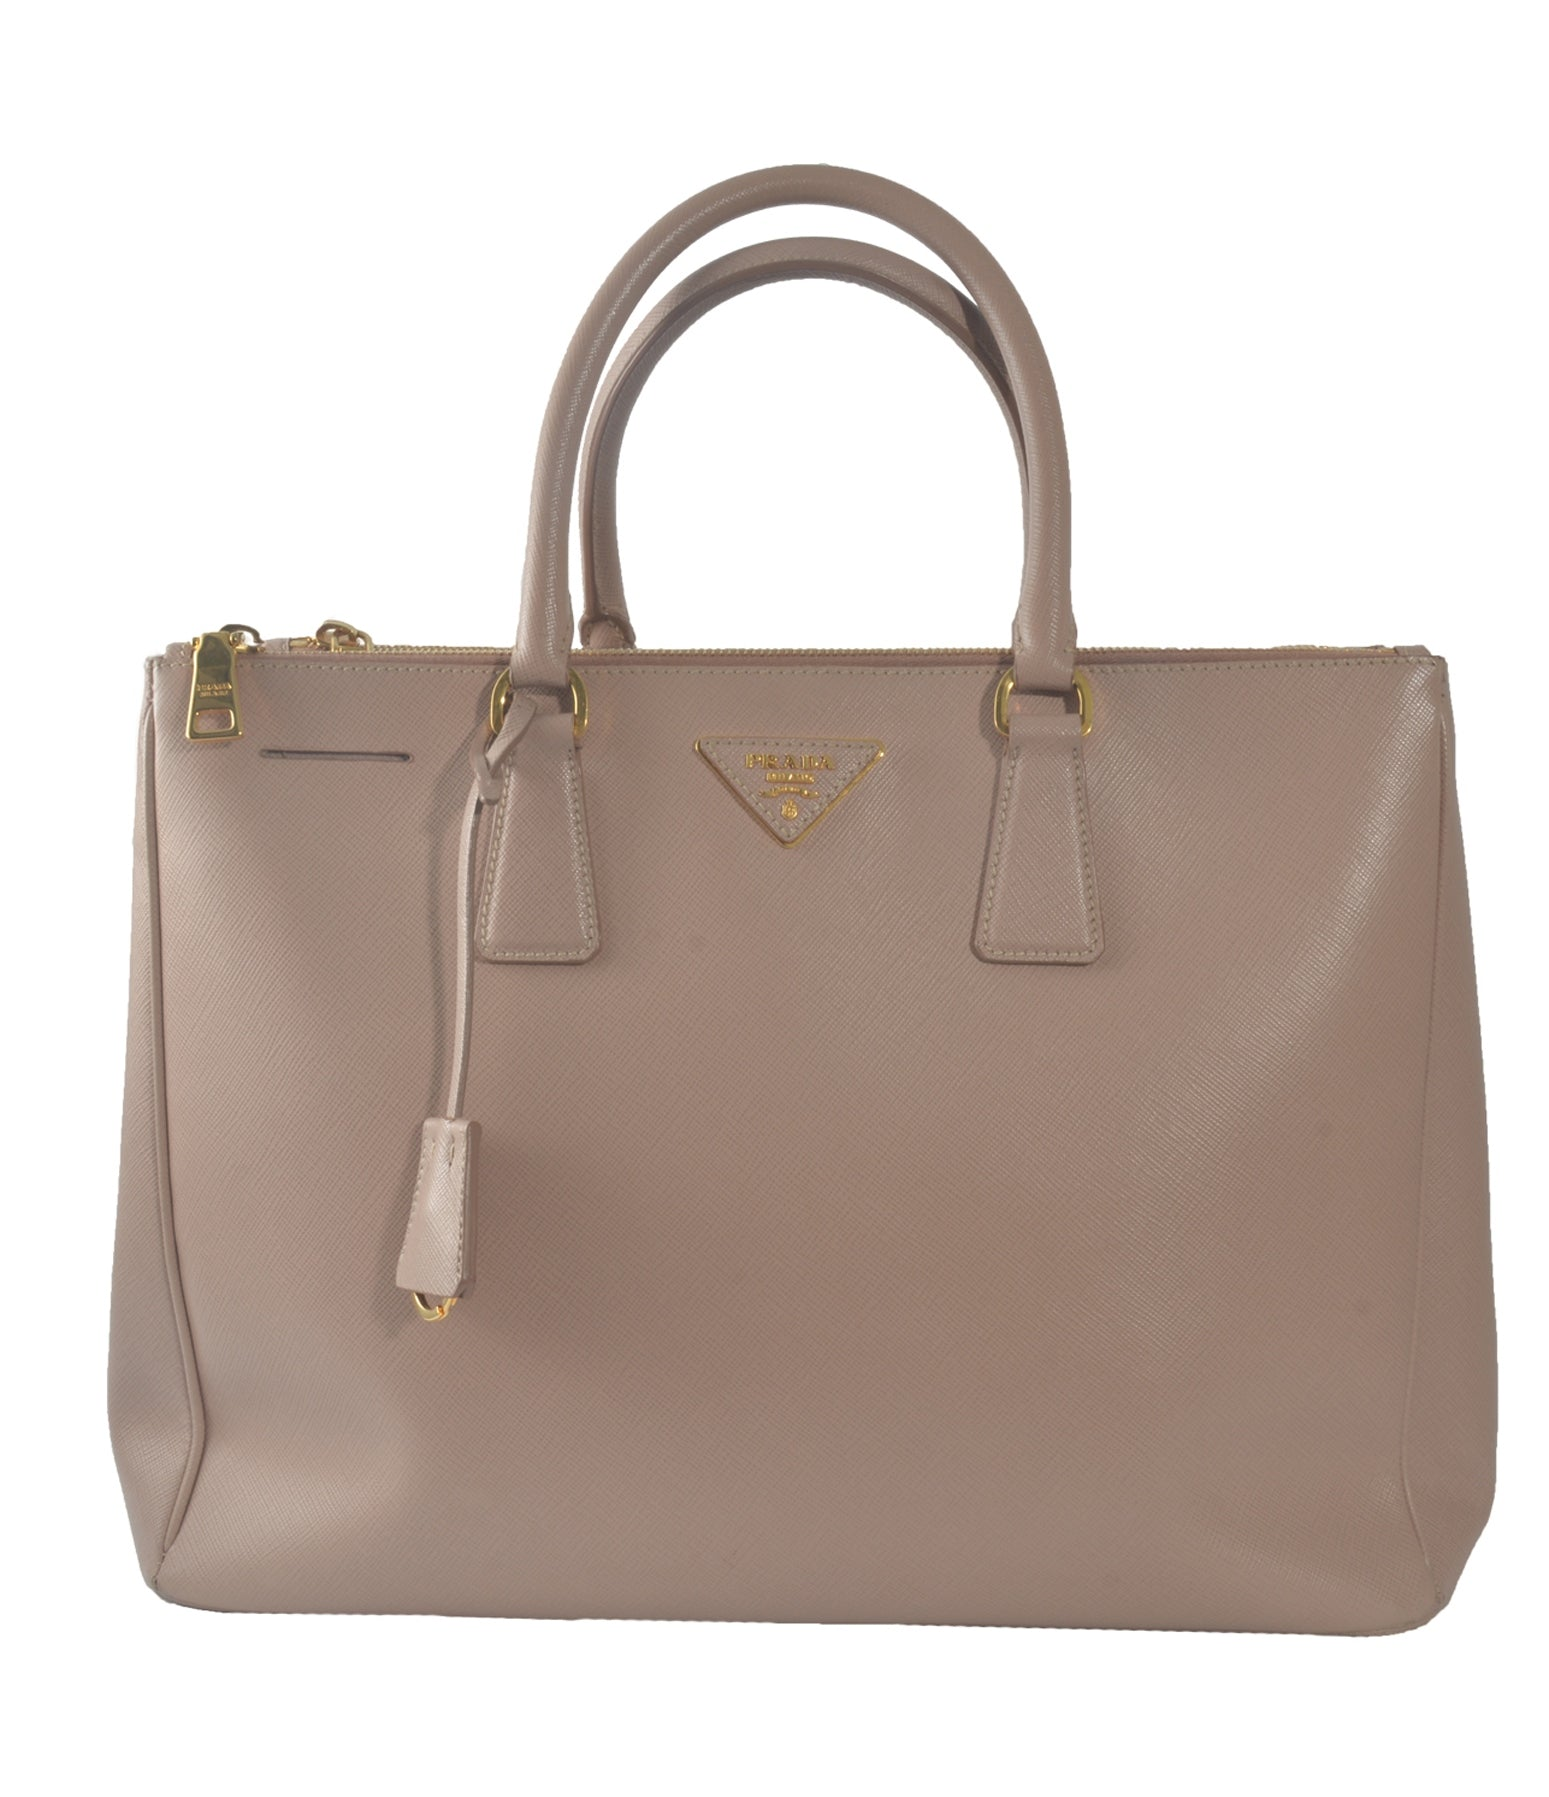 SAFFIANO LUX LEATHER LARGE DOUBLE ZIP